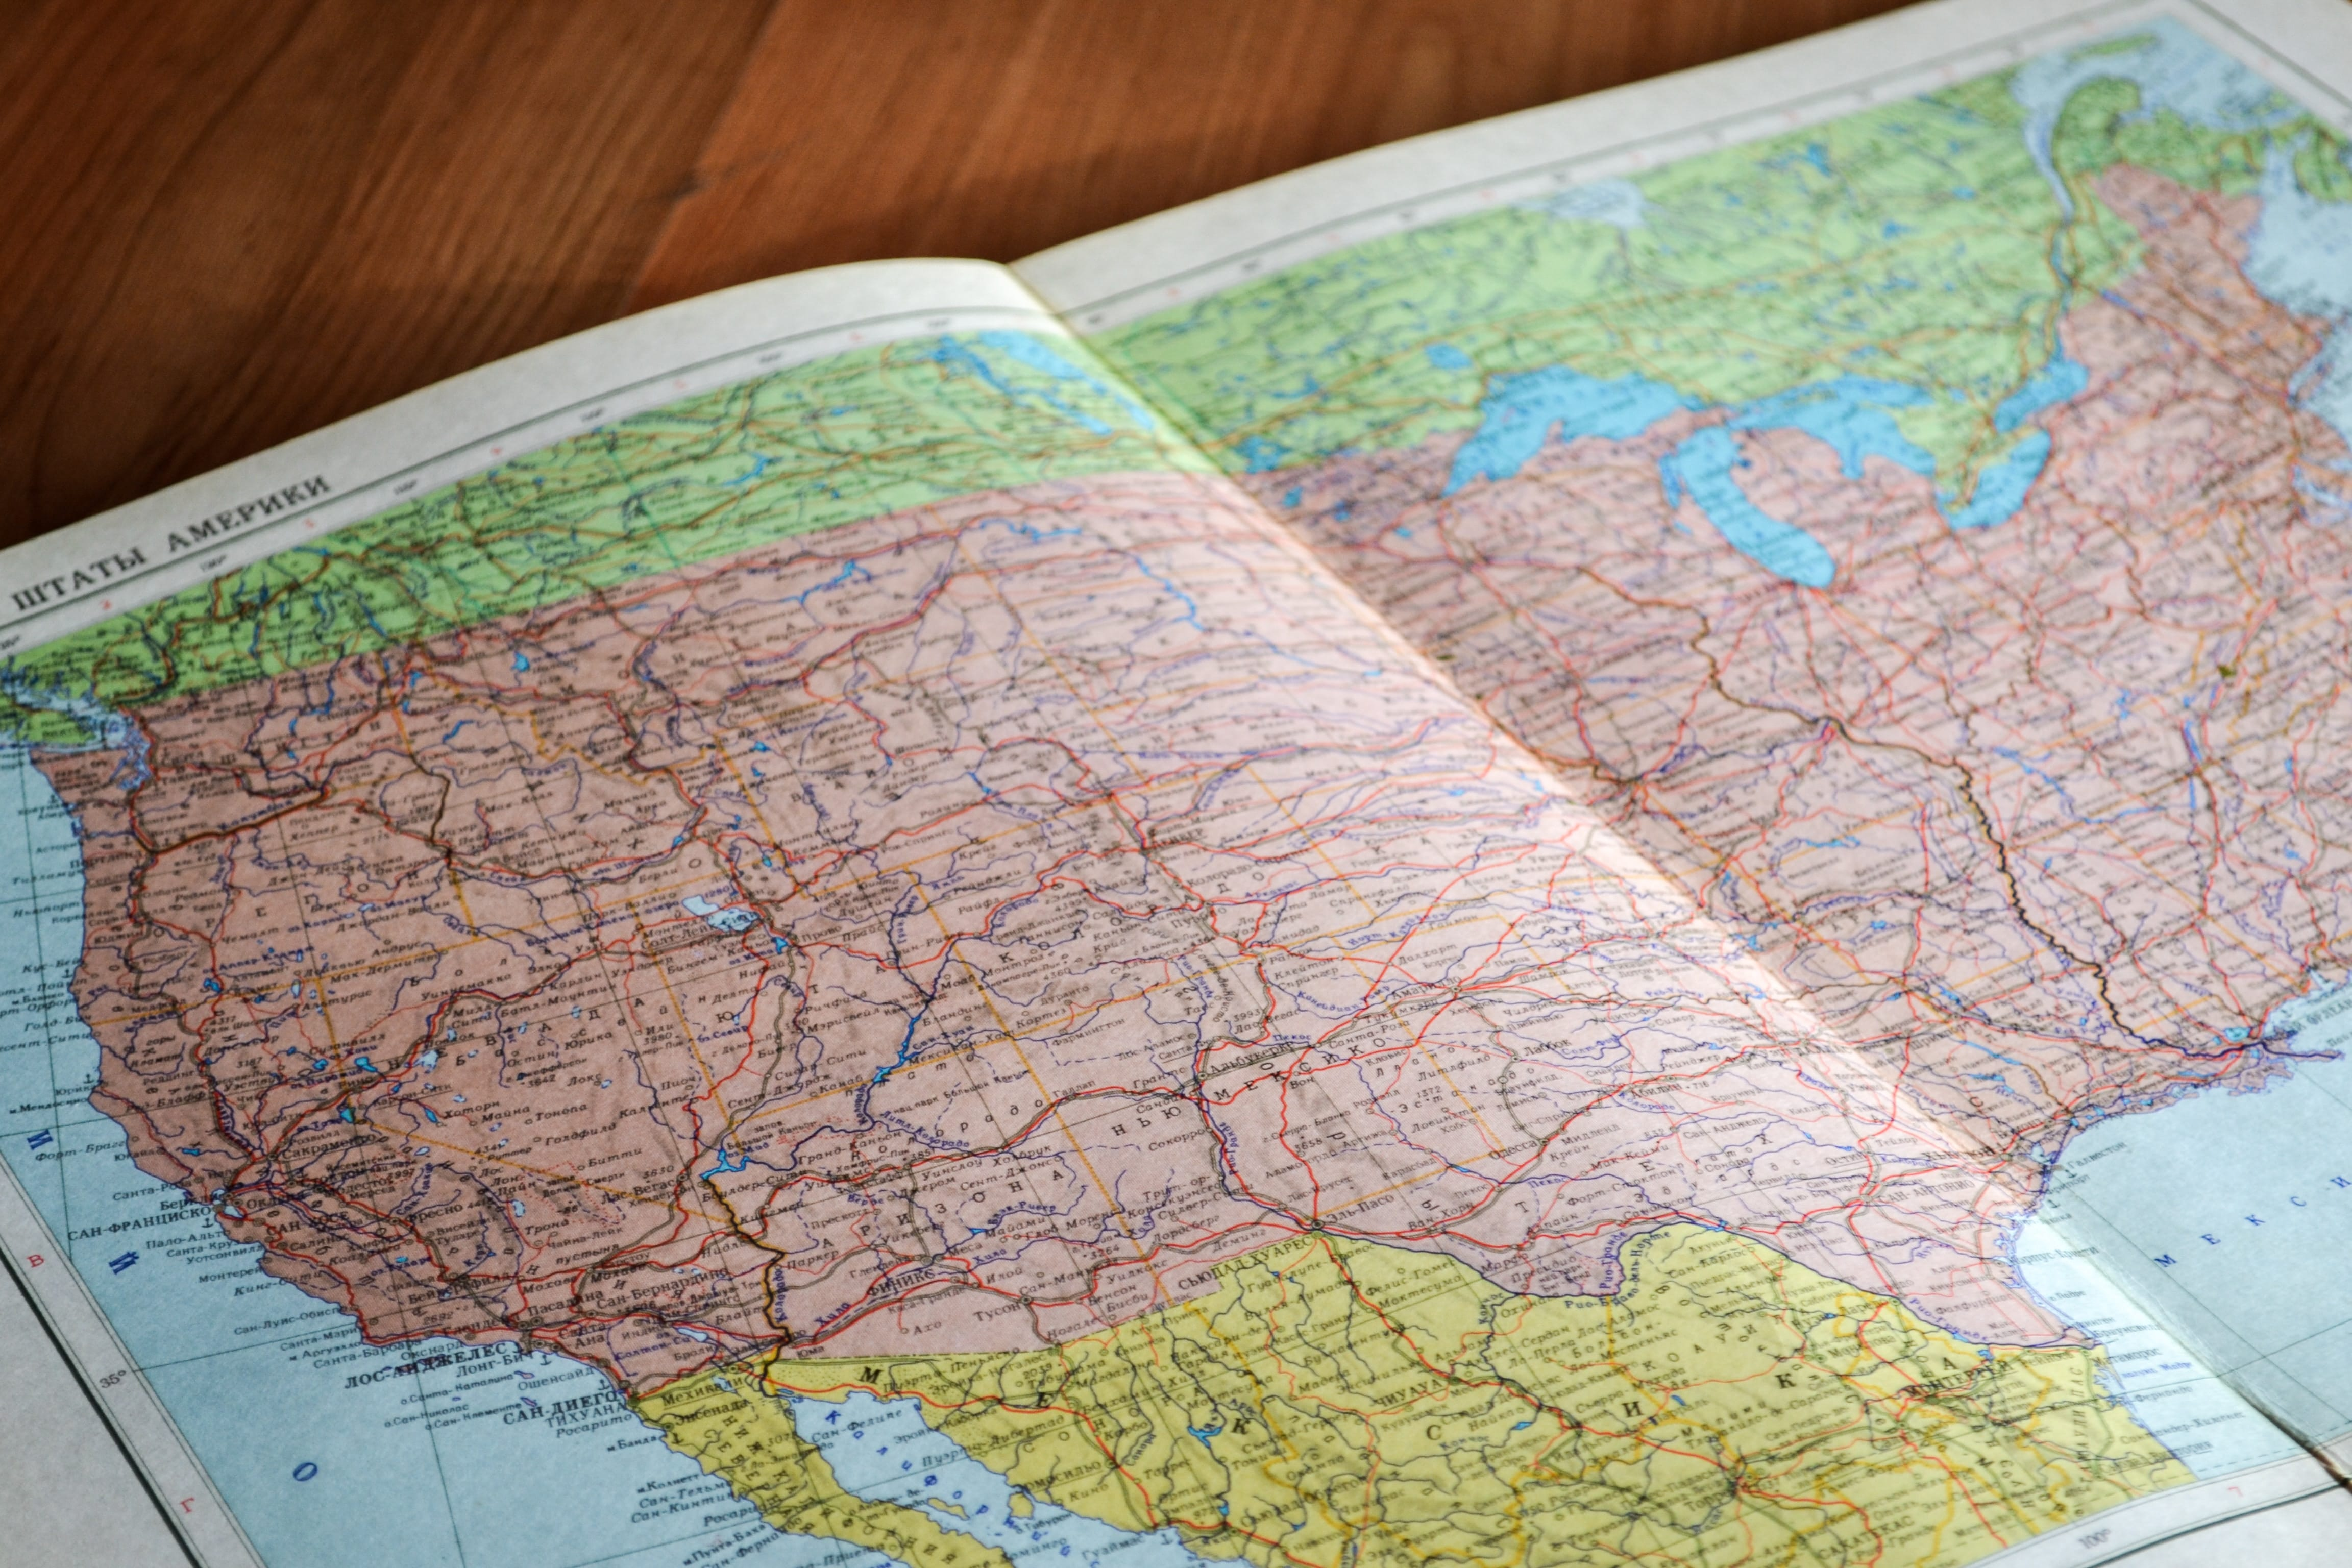 The Top 10 Cities for Lawyers in 2019 - Legal Reader